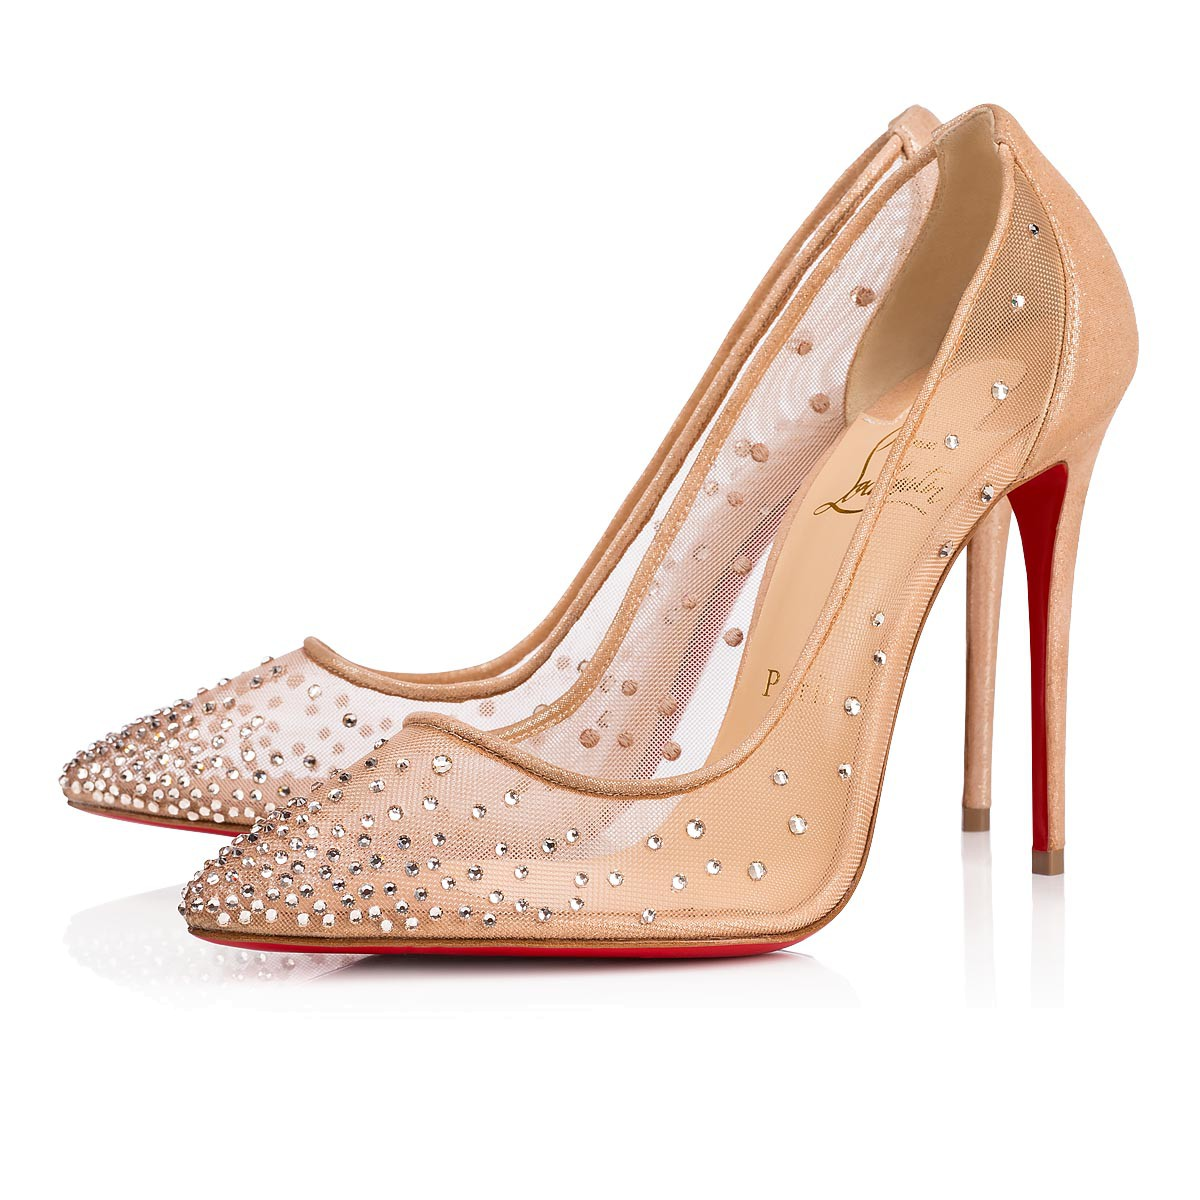 7c6d2c0c2c Christian Louboutin Follies Spikes 100mm Heels – approx. R17,500